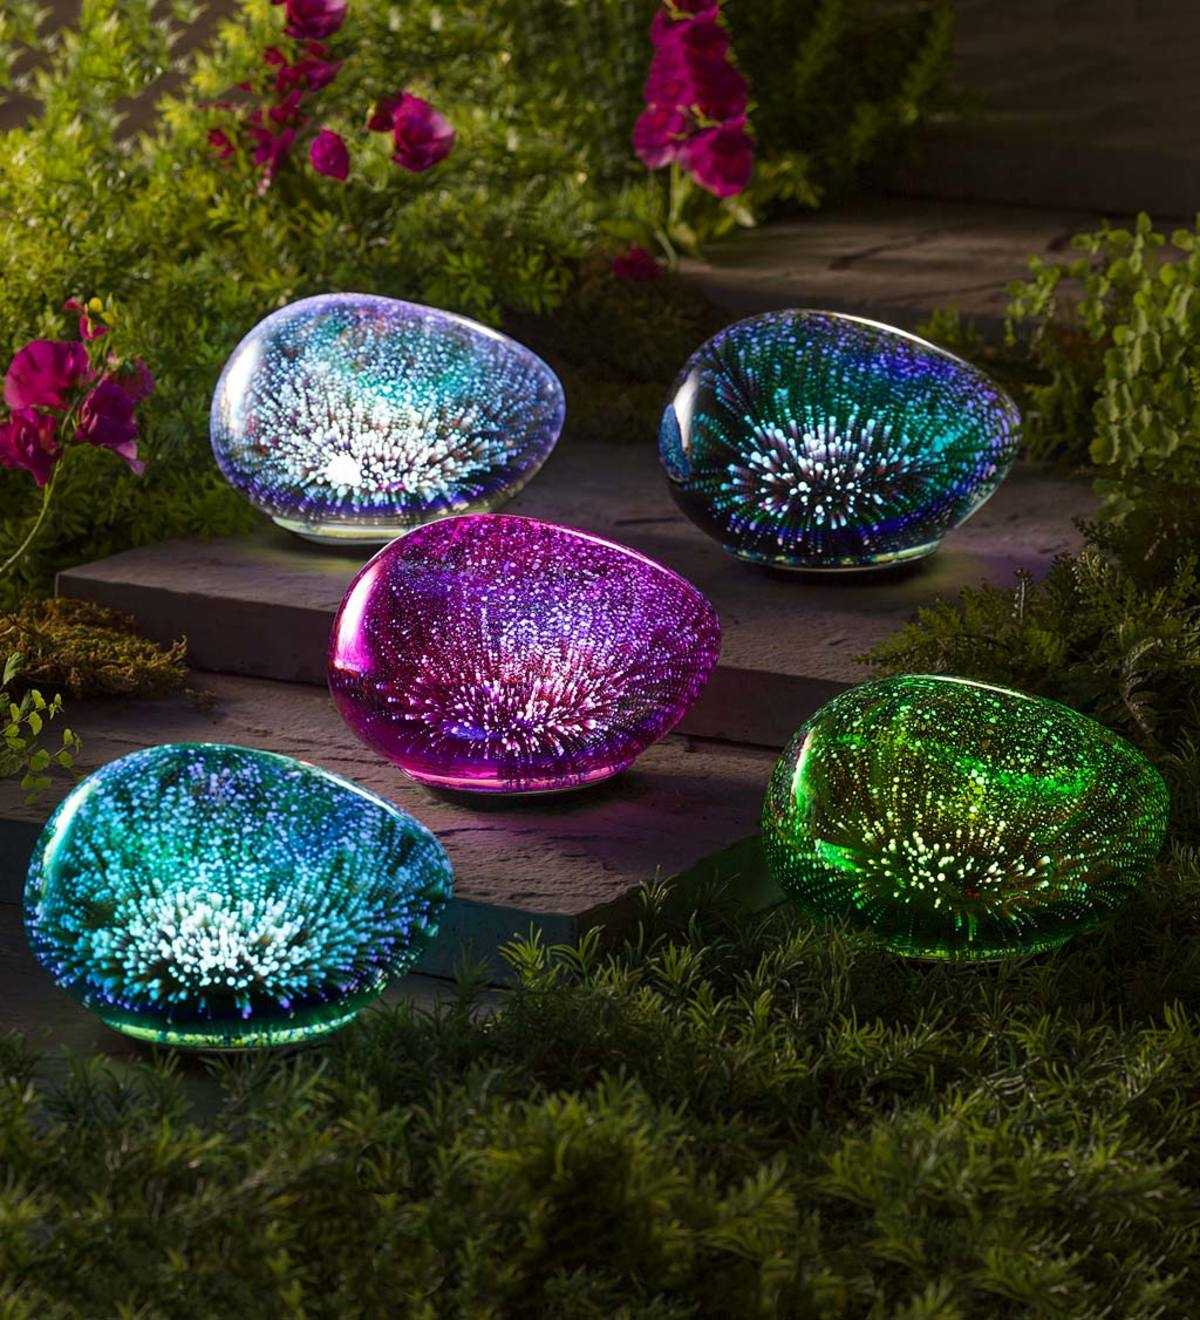 Lighted Art Glass Decorative Glowing Garden Rocks